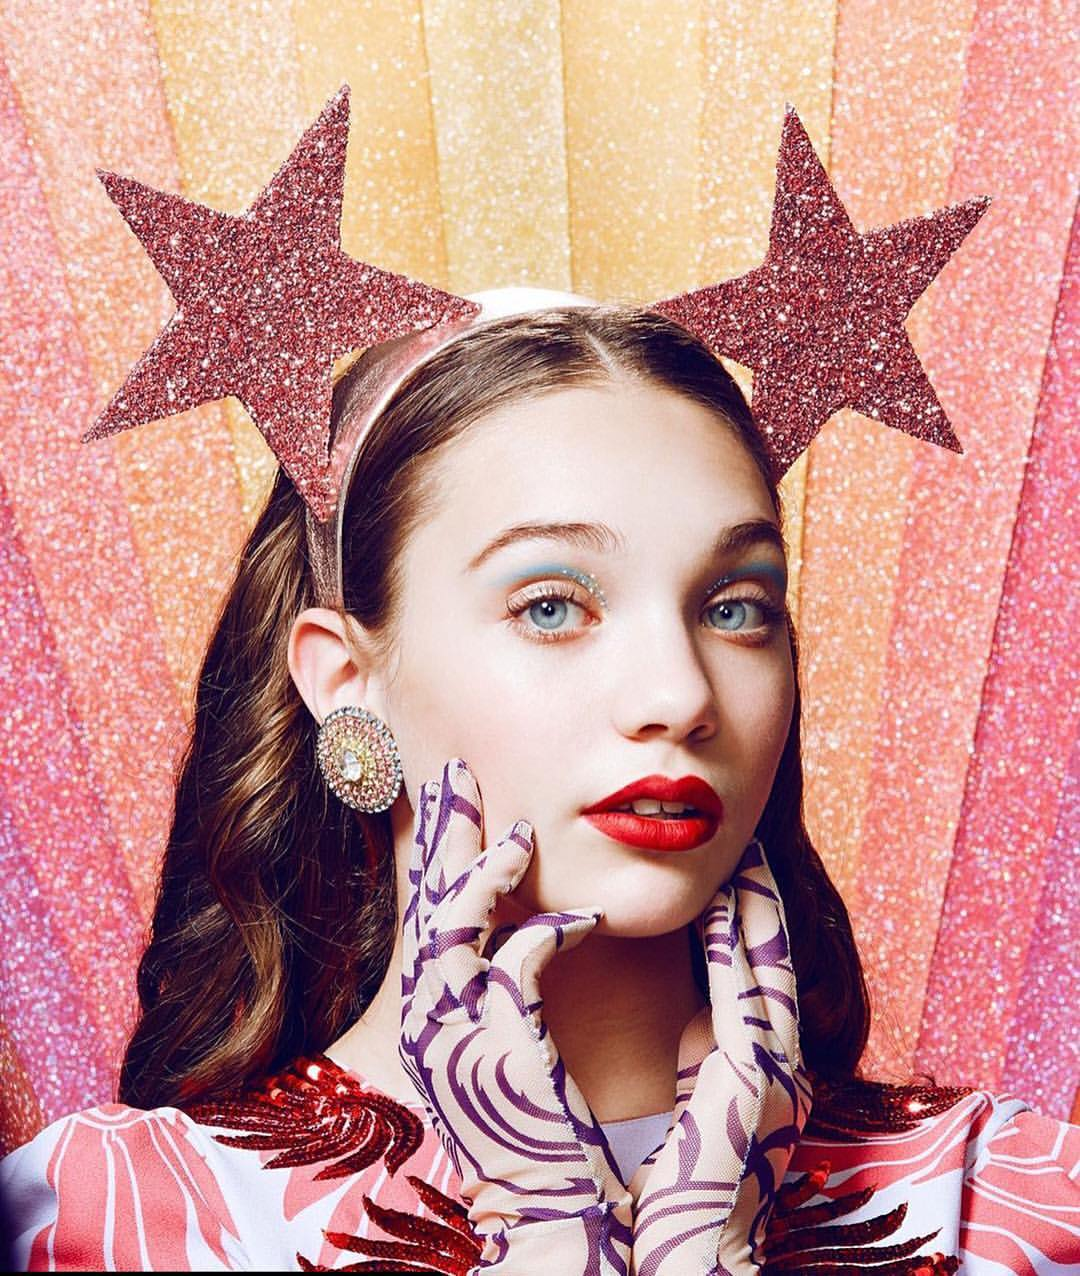 Singer Sia's mini dancer Maddie Ziegler in Suga Pink Stars in Paper Magazine's #YOUth issue